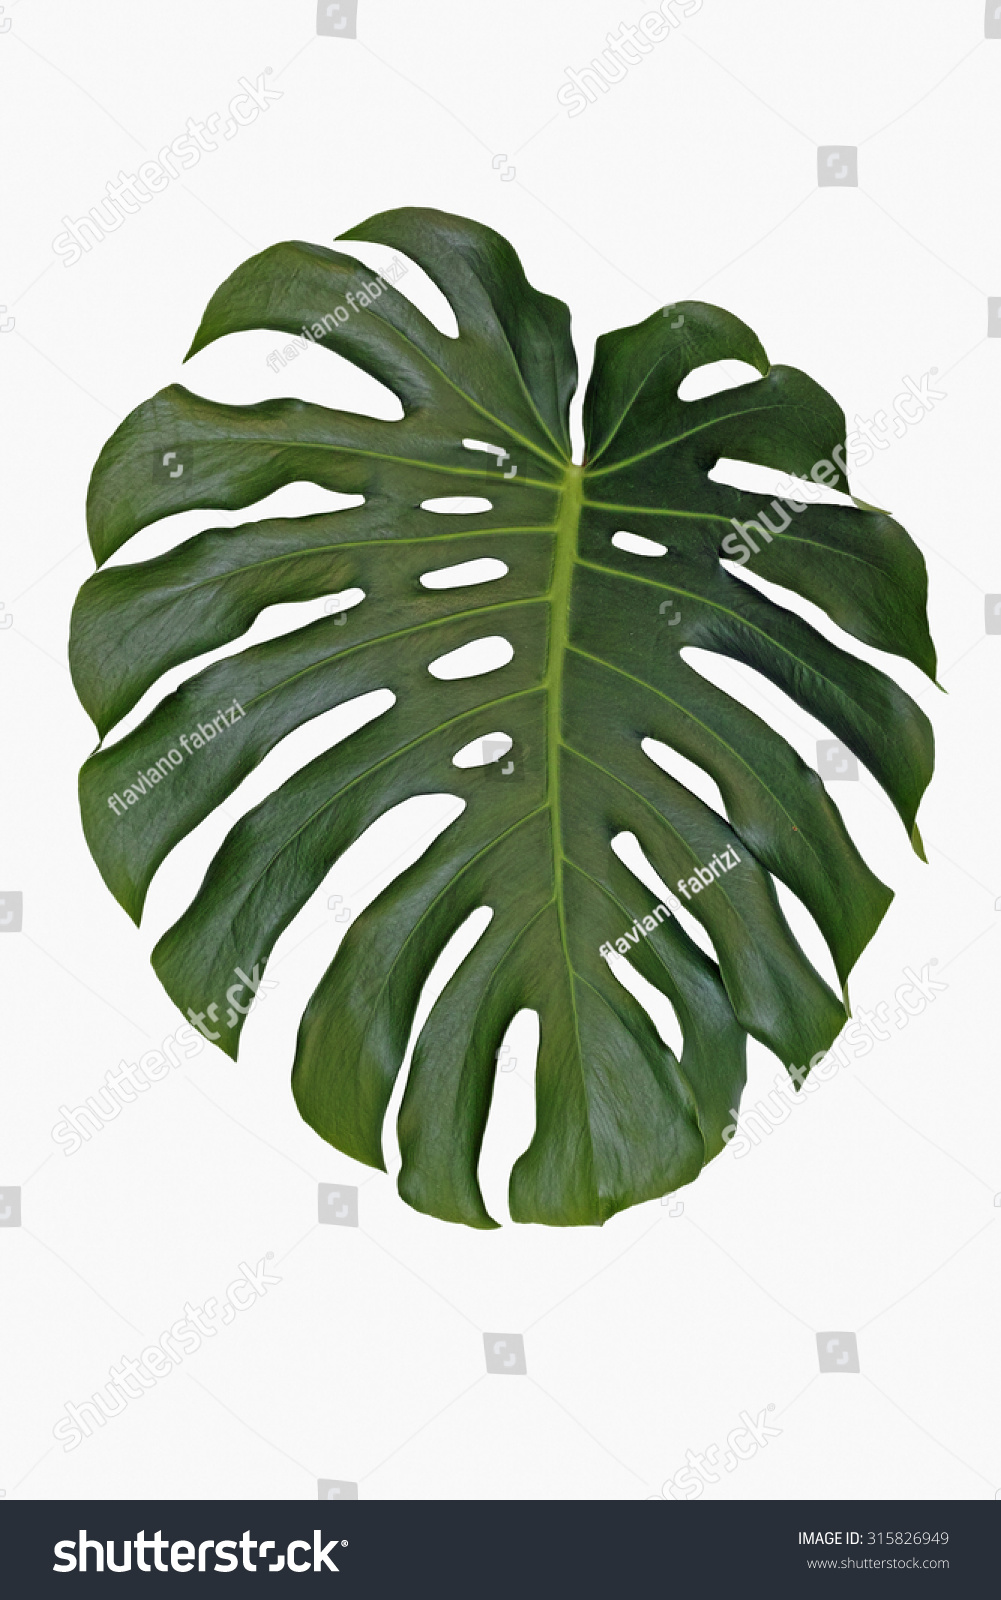 isolated leaf split leaf philodendron monstera stock photo 315826949 shutterstock. Black Bedroom Furniture Sets. Home Design Ideas